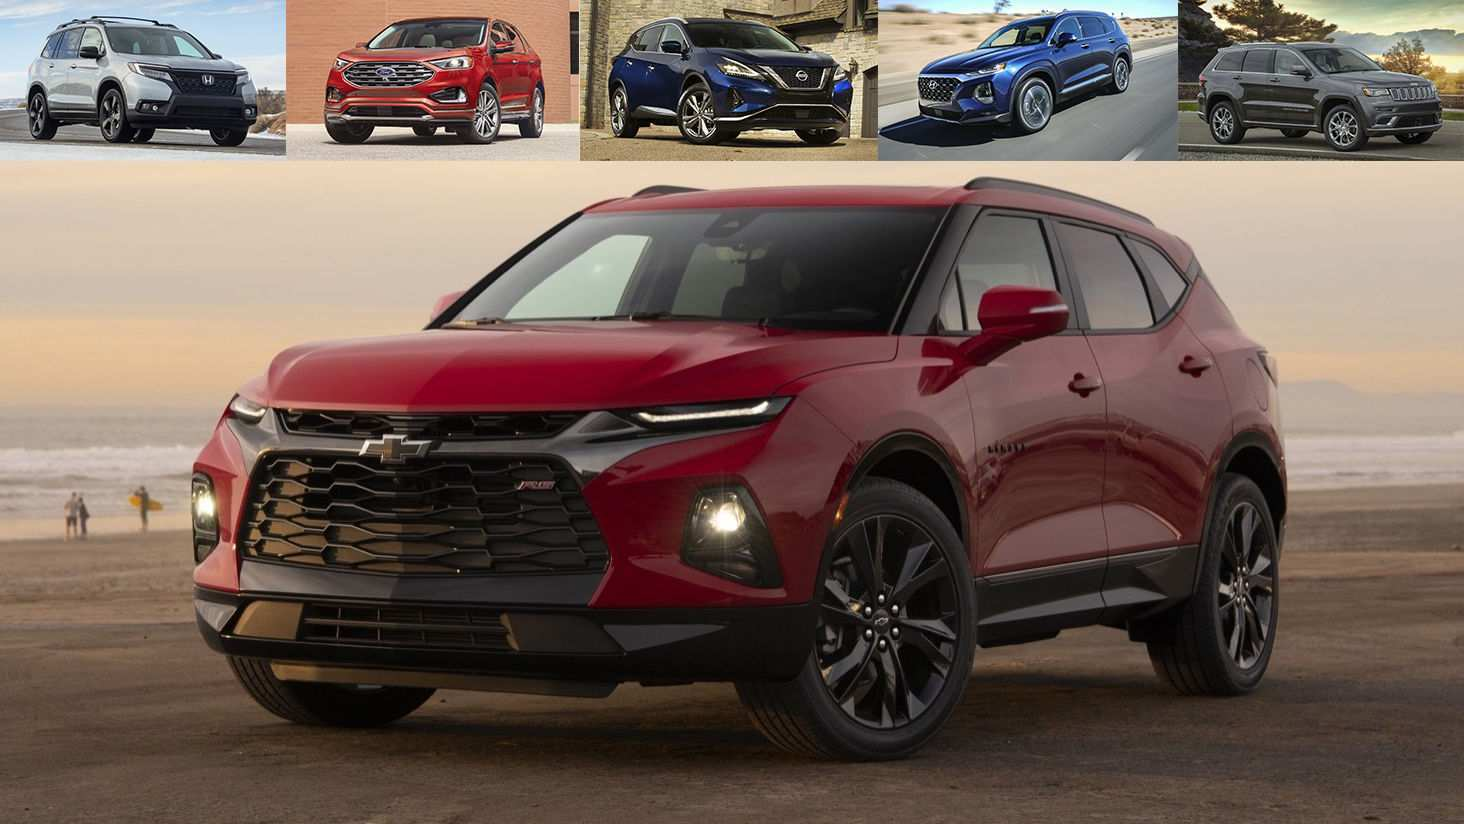 89 All New 2019 Chevy Blazer Price And Review